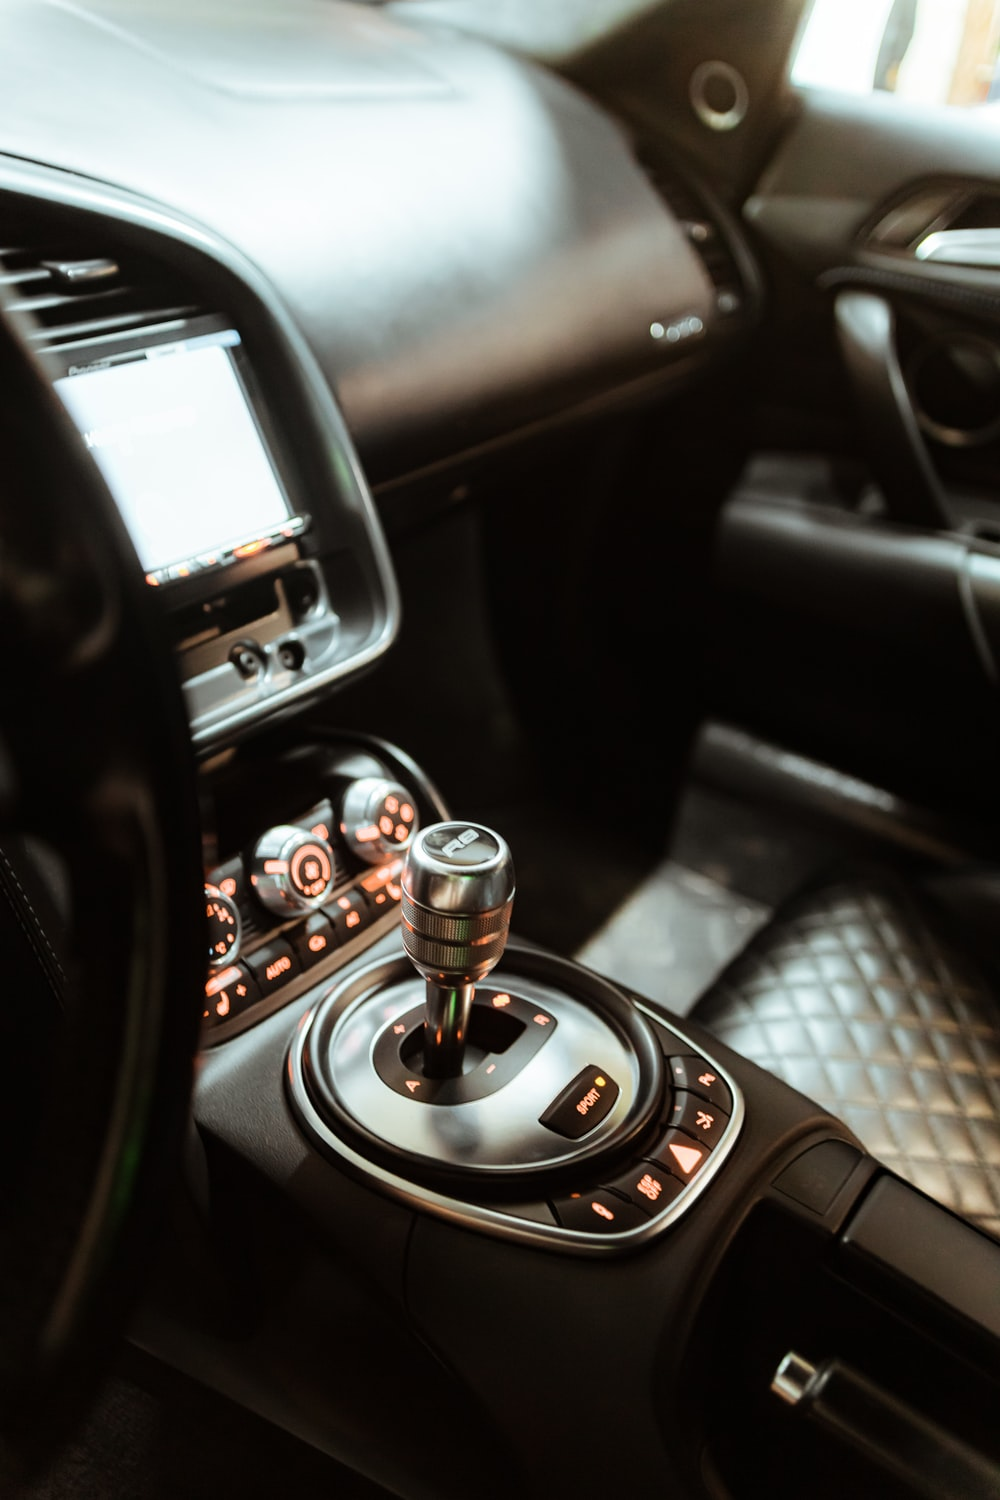 black and silver car gear shift lever